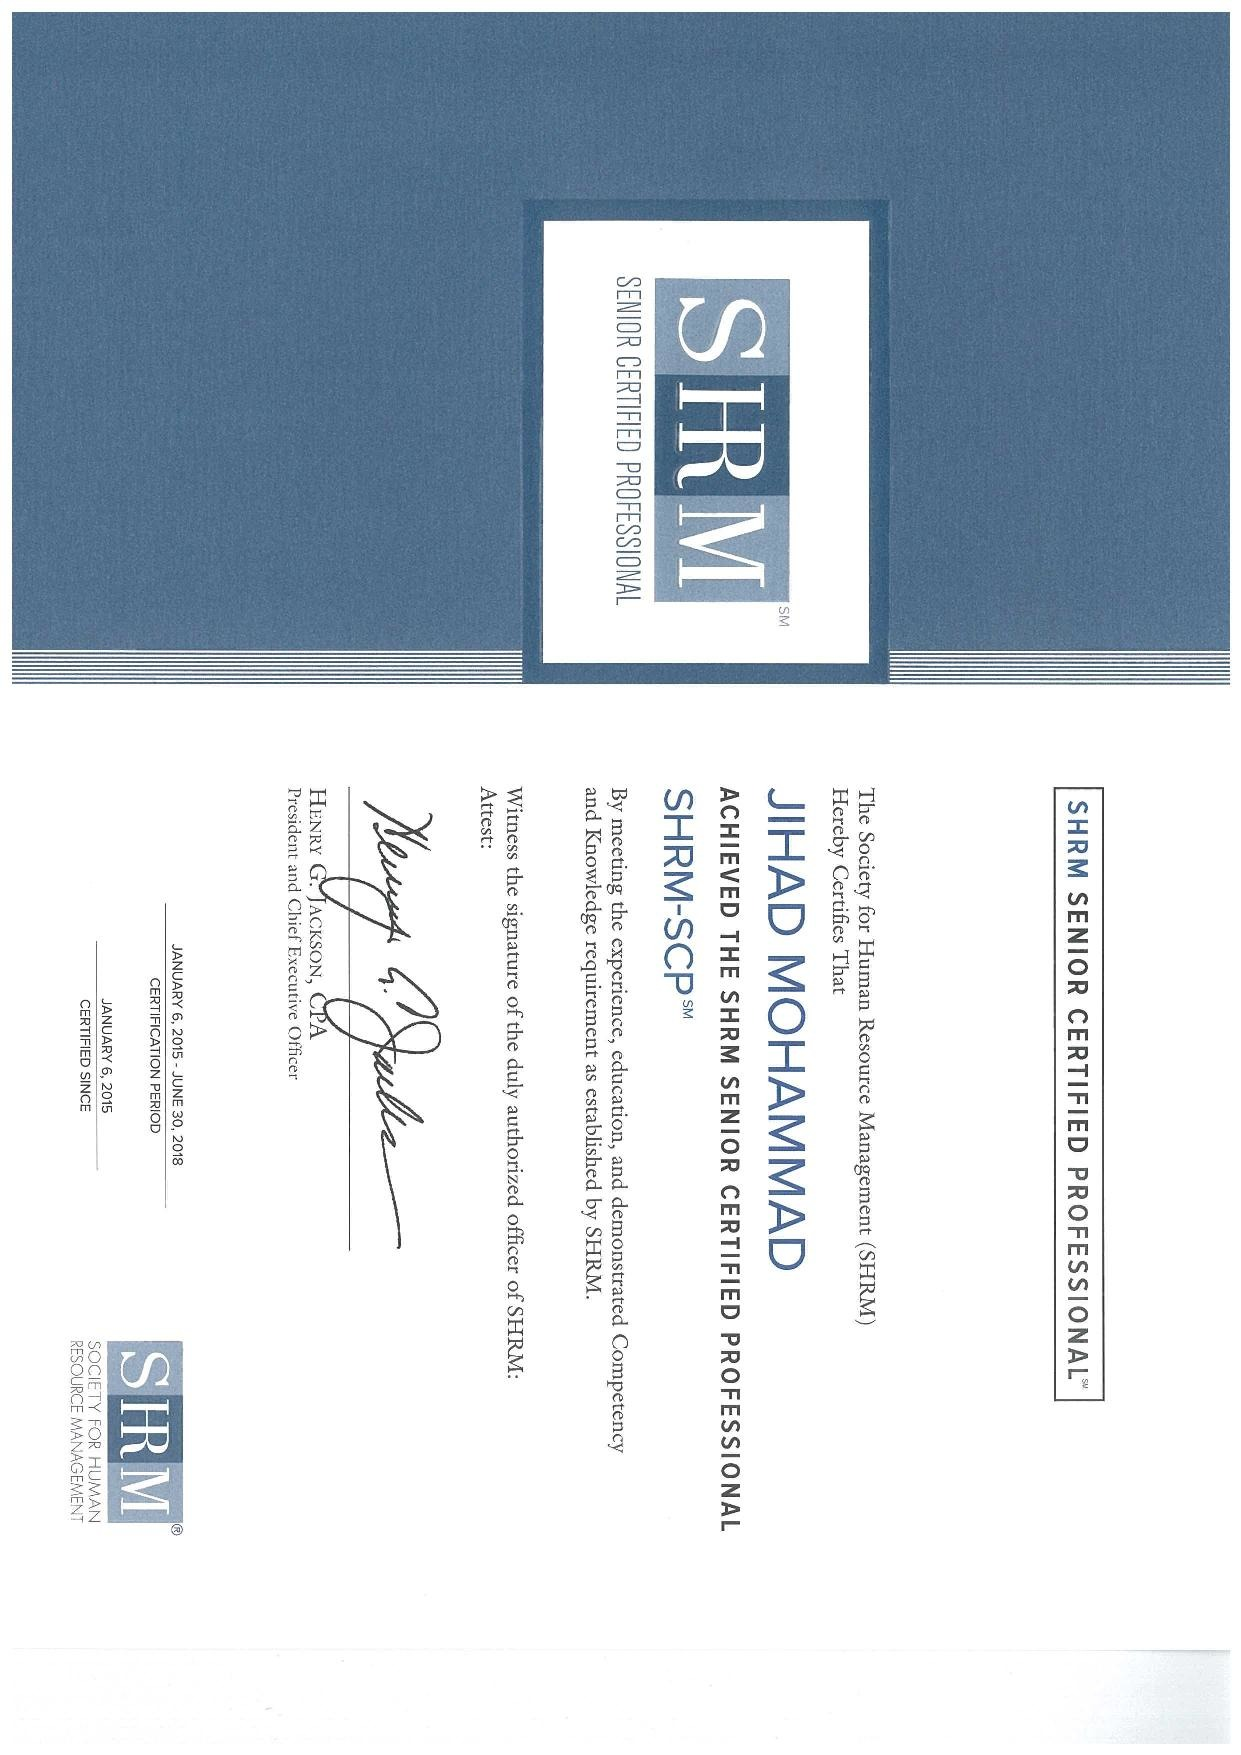 Jihad mohammad mba spp sphrishrm scp odcp cmc pmp bayt shrm senior certified professional certificate 1betcityfo Choice Image